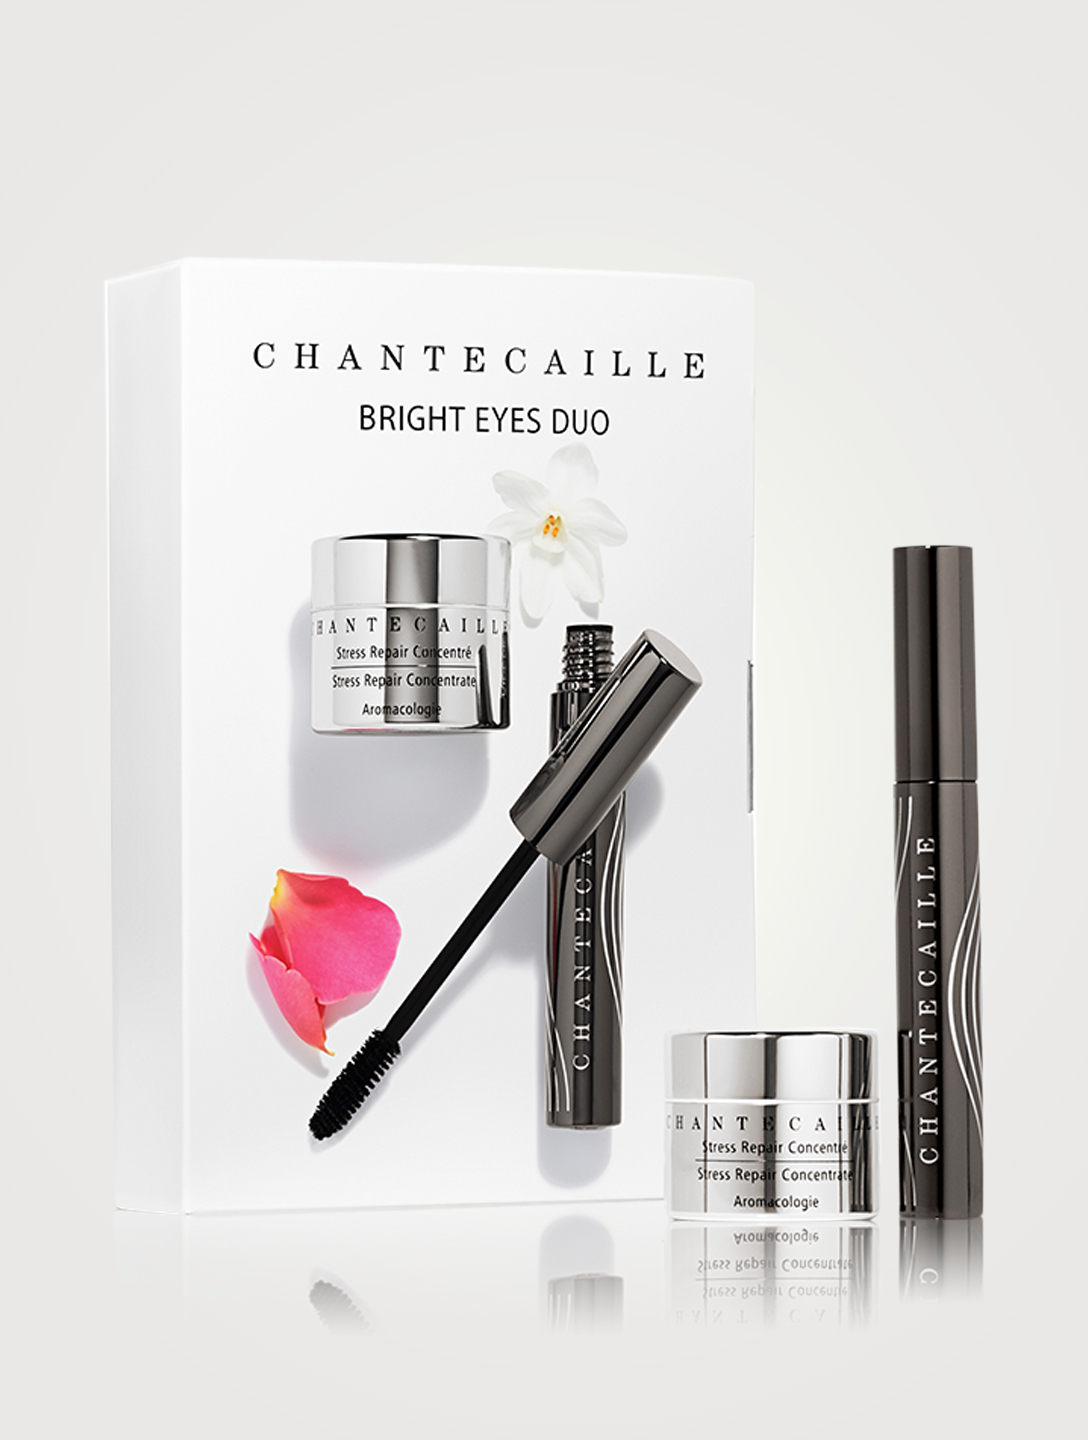 CHANTECAILLE Duo regard étincelant Beauté